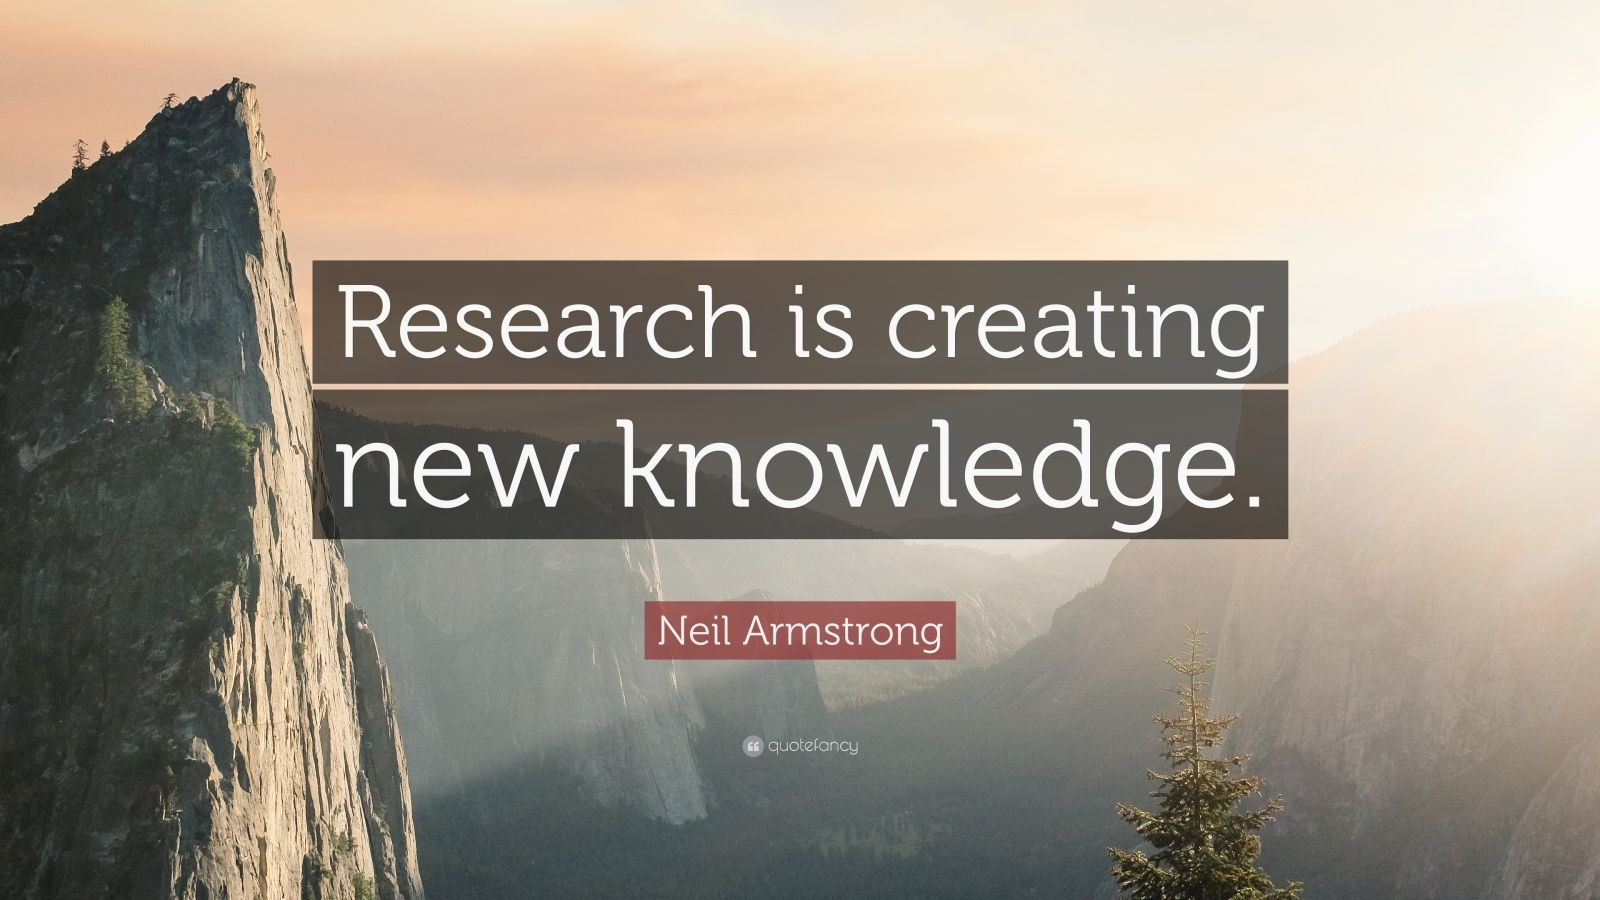 Steve Jobs Motivational Quotes Wallpaper Neil Armstrong Quote Research Is Creating New Knowledge